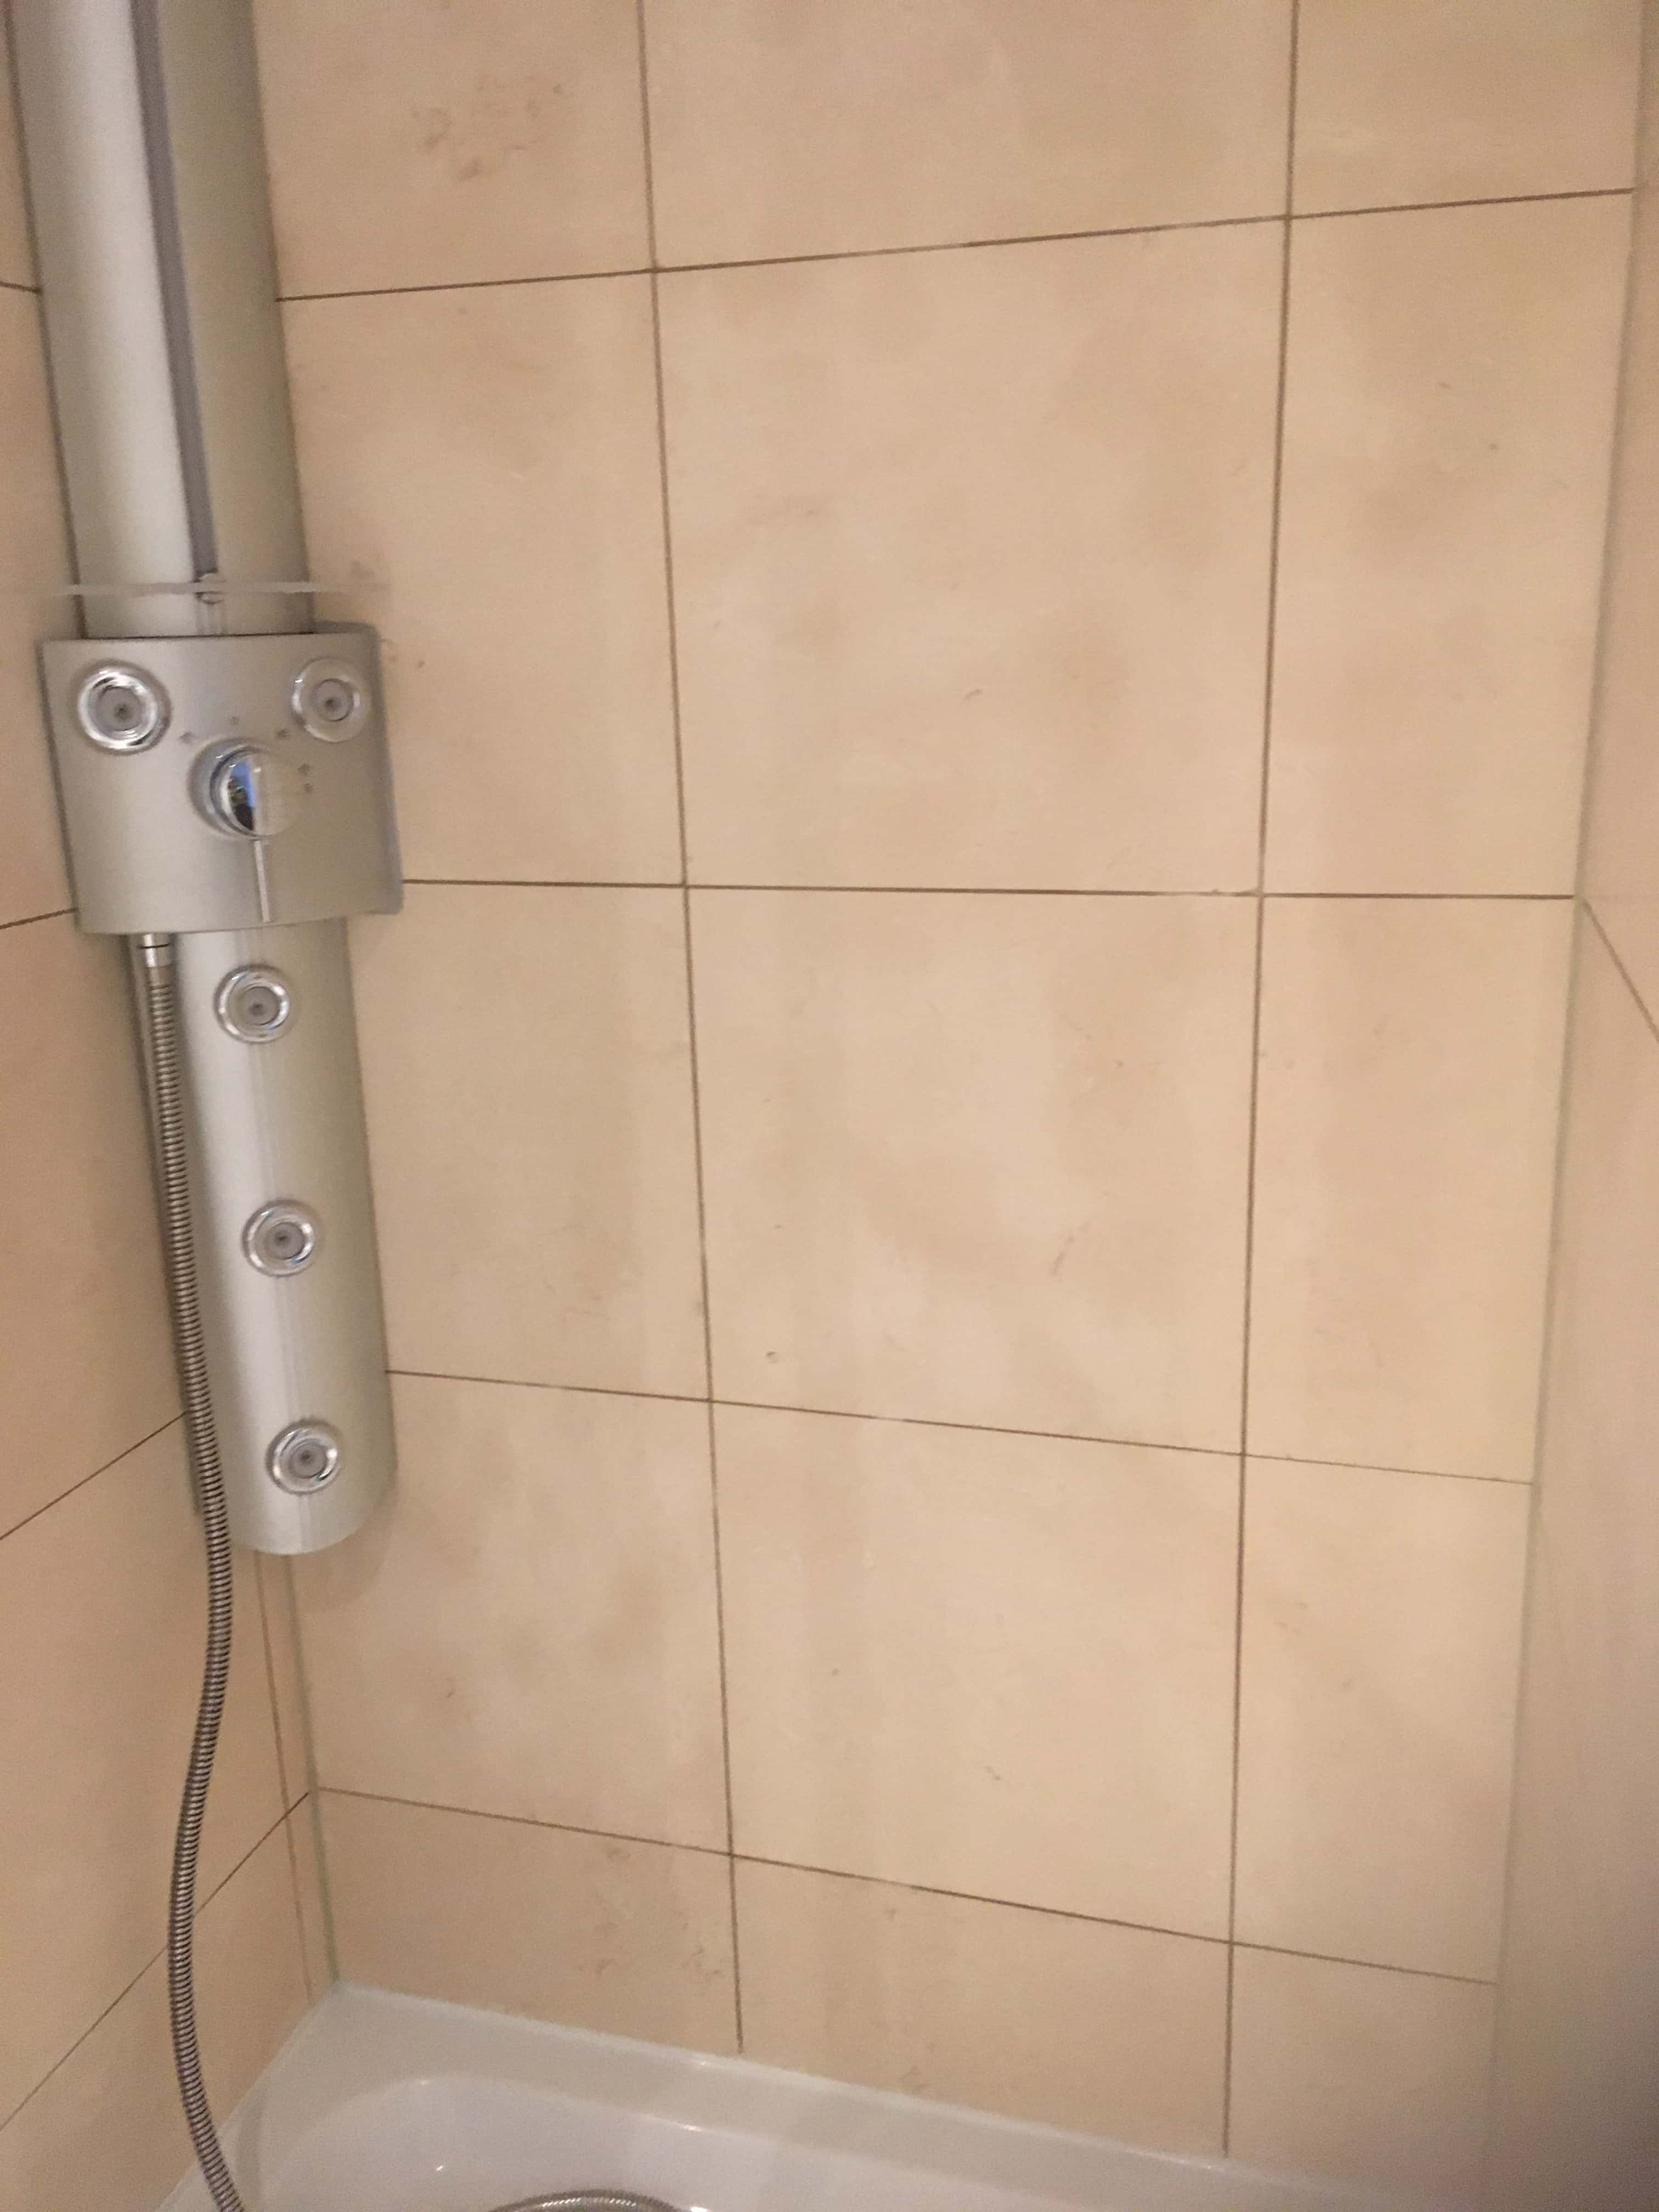 Limestone Tiled Shower Cubicle After Mould Removal Manchester City Centre